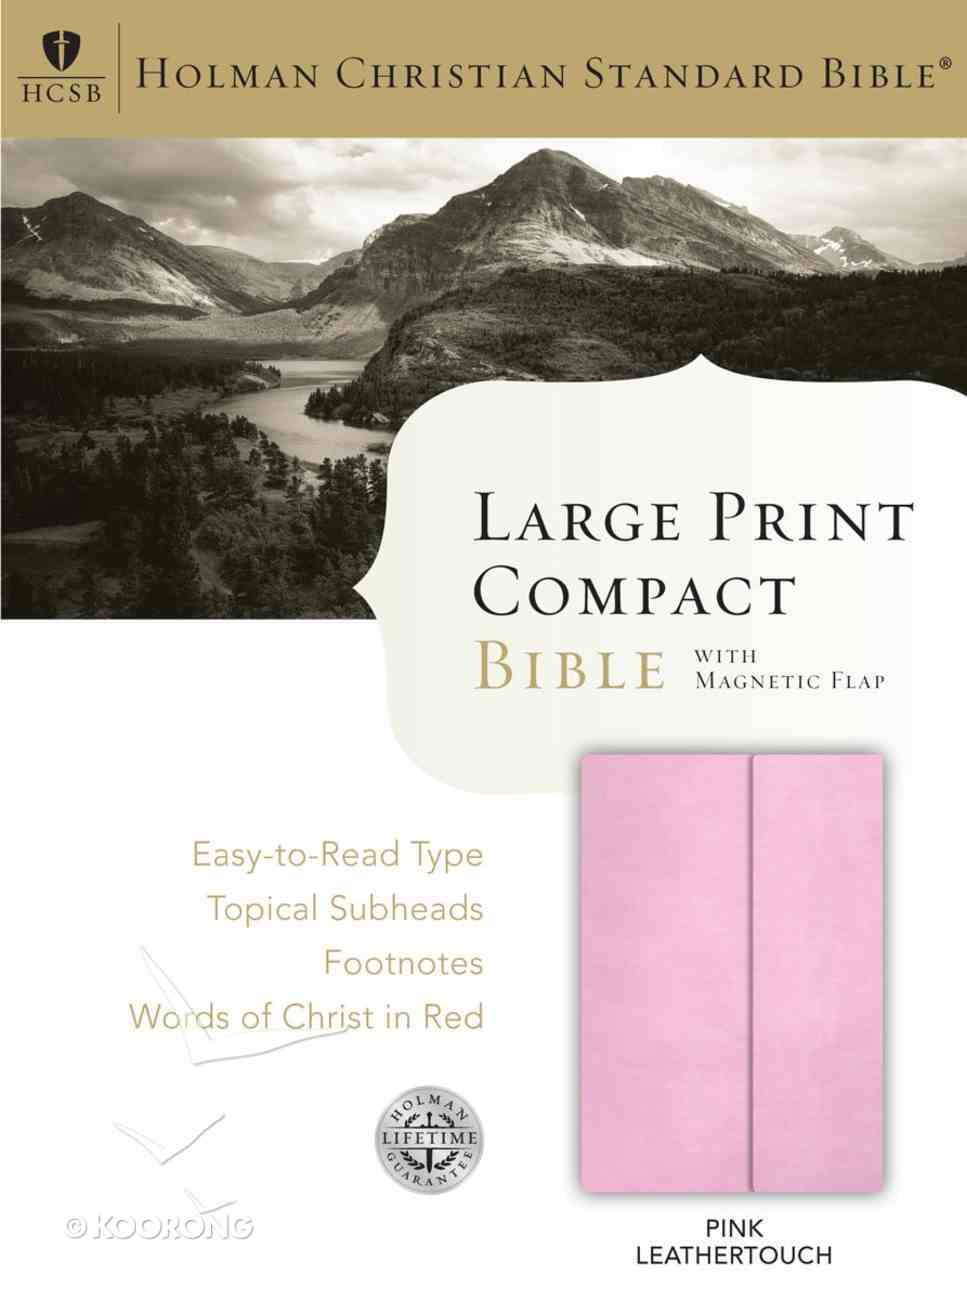 HCSB Large Print Compact Bible With Magnetic Flap Pink Leathertouch Imitation Leather